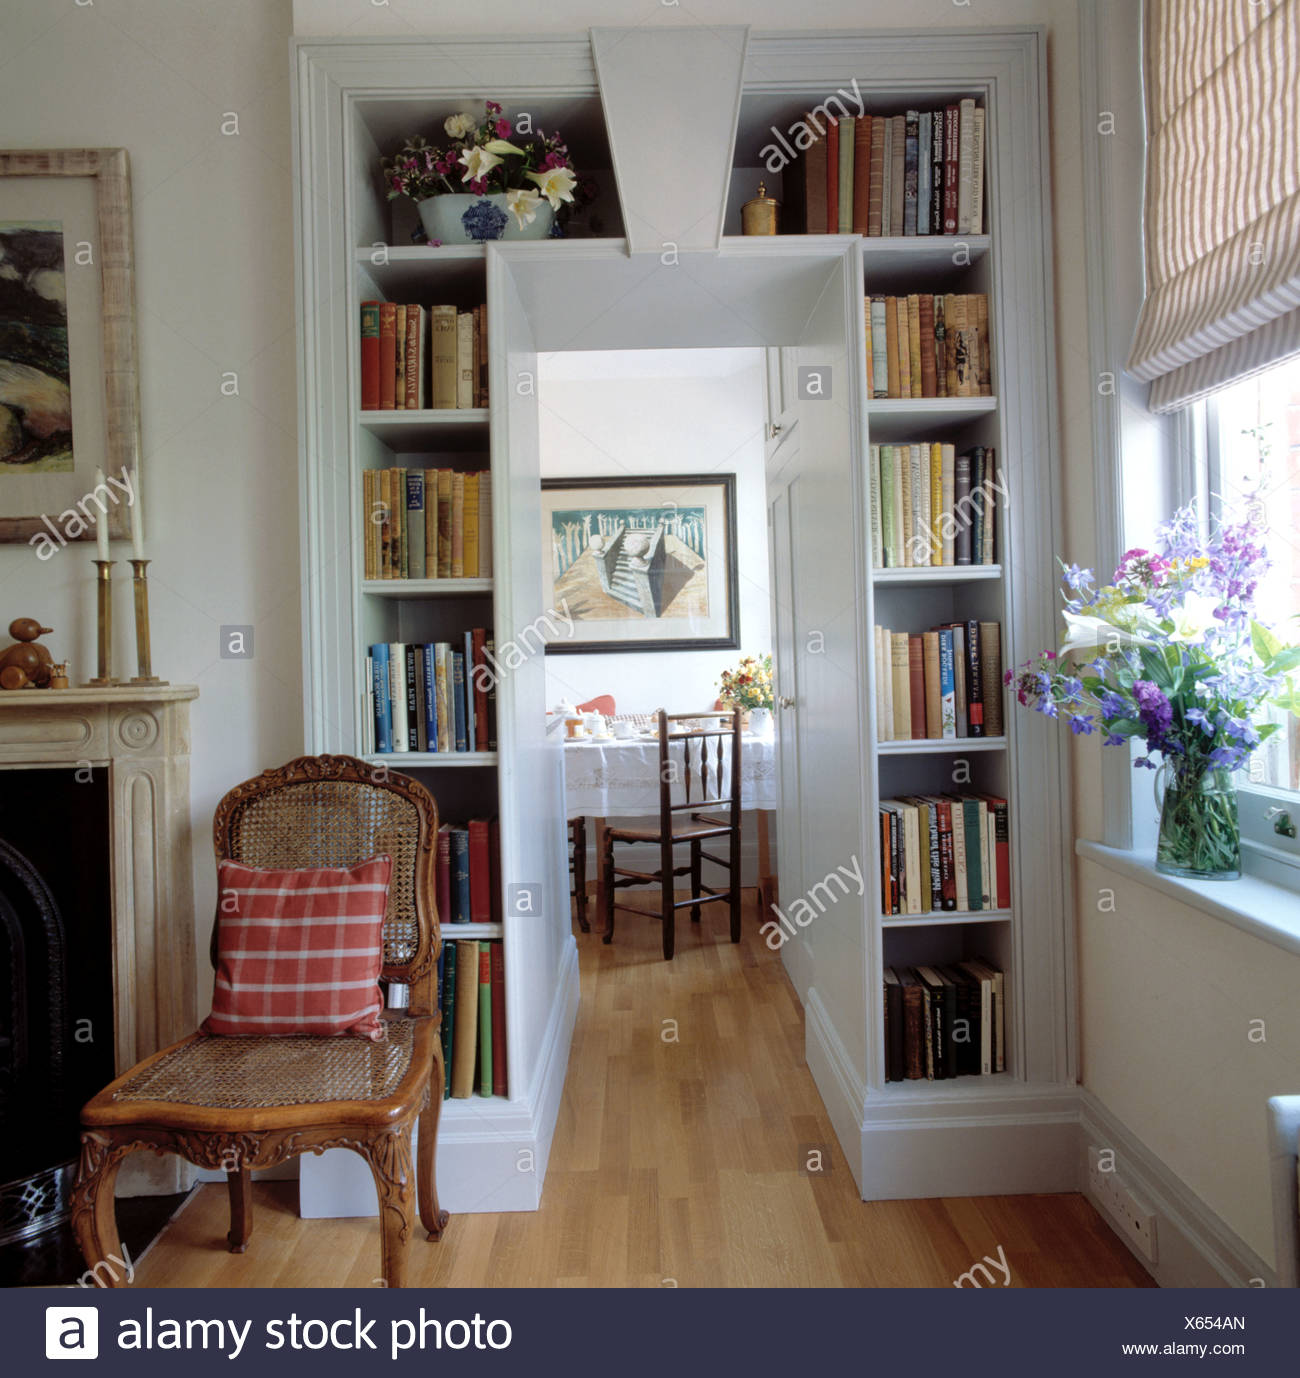 Antique Bergere Chair Beside Bookshelves Framing Doorway In Apartment Dining  Room With Wooden Flooring